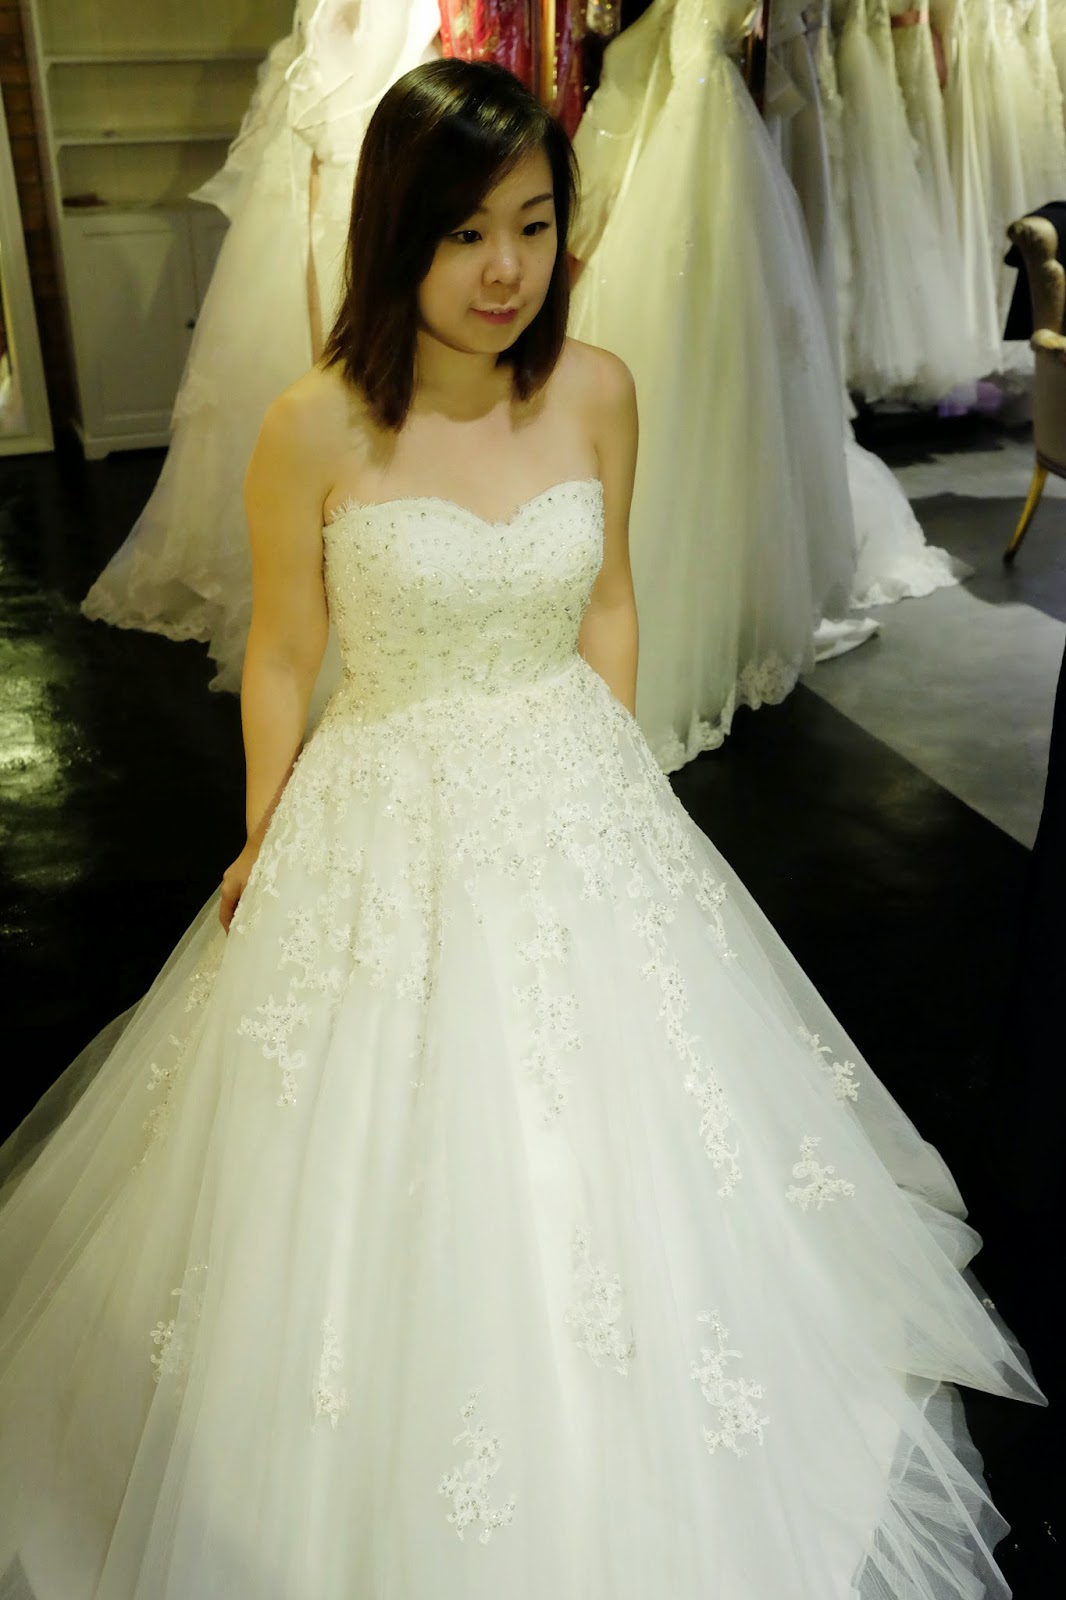 wedding blog hunting for perfect dress renting wedding dresses Price Around RM RM for rent They are flexible to let me have the dress for 1 week since I m in Singapore